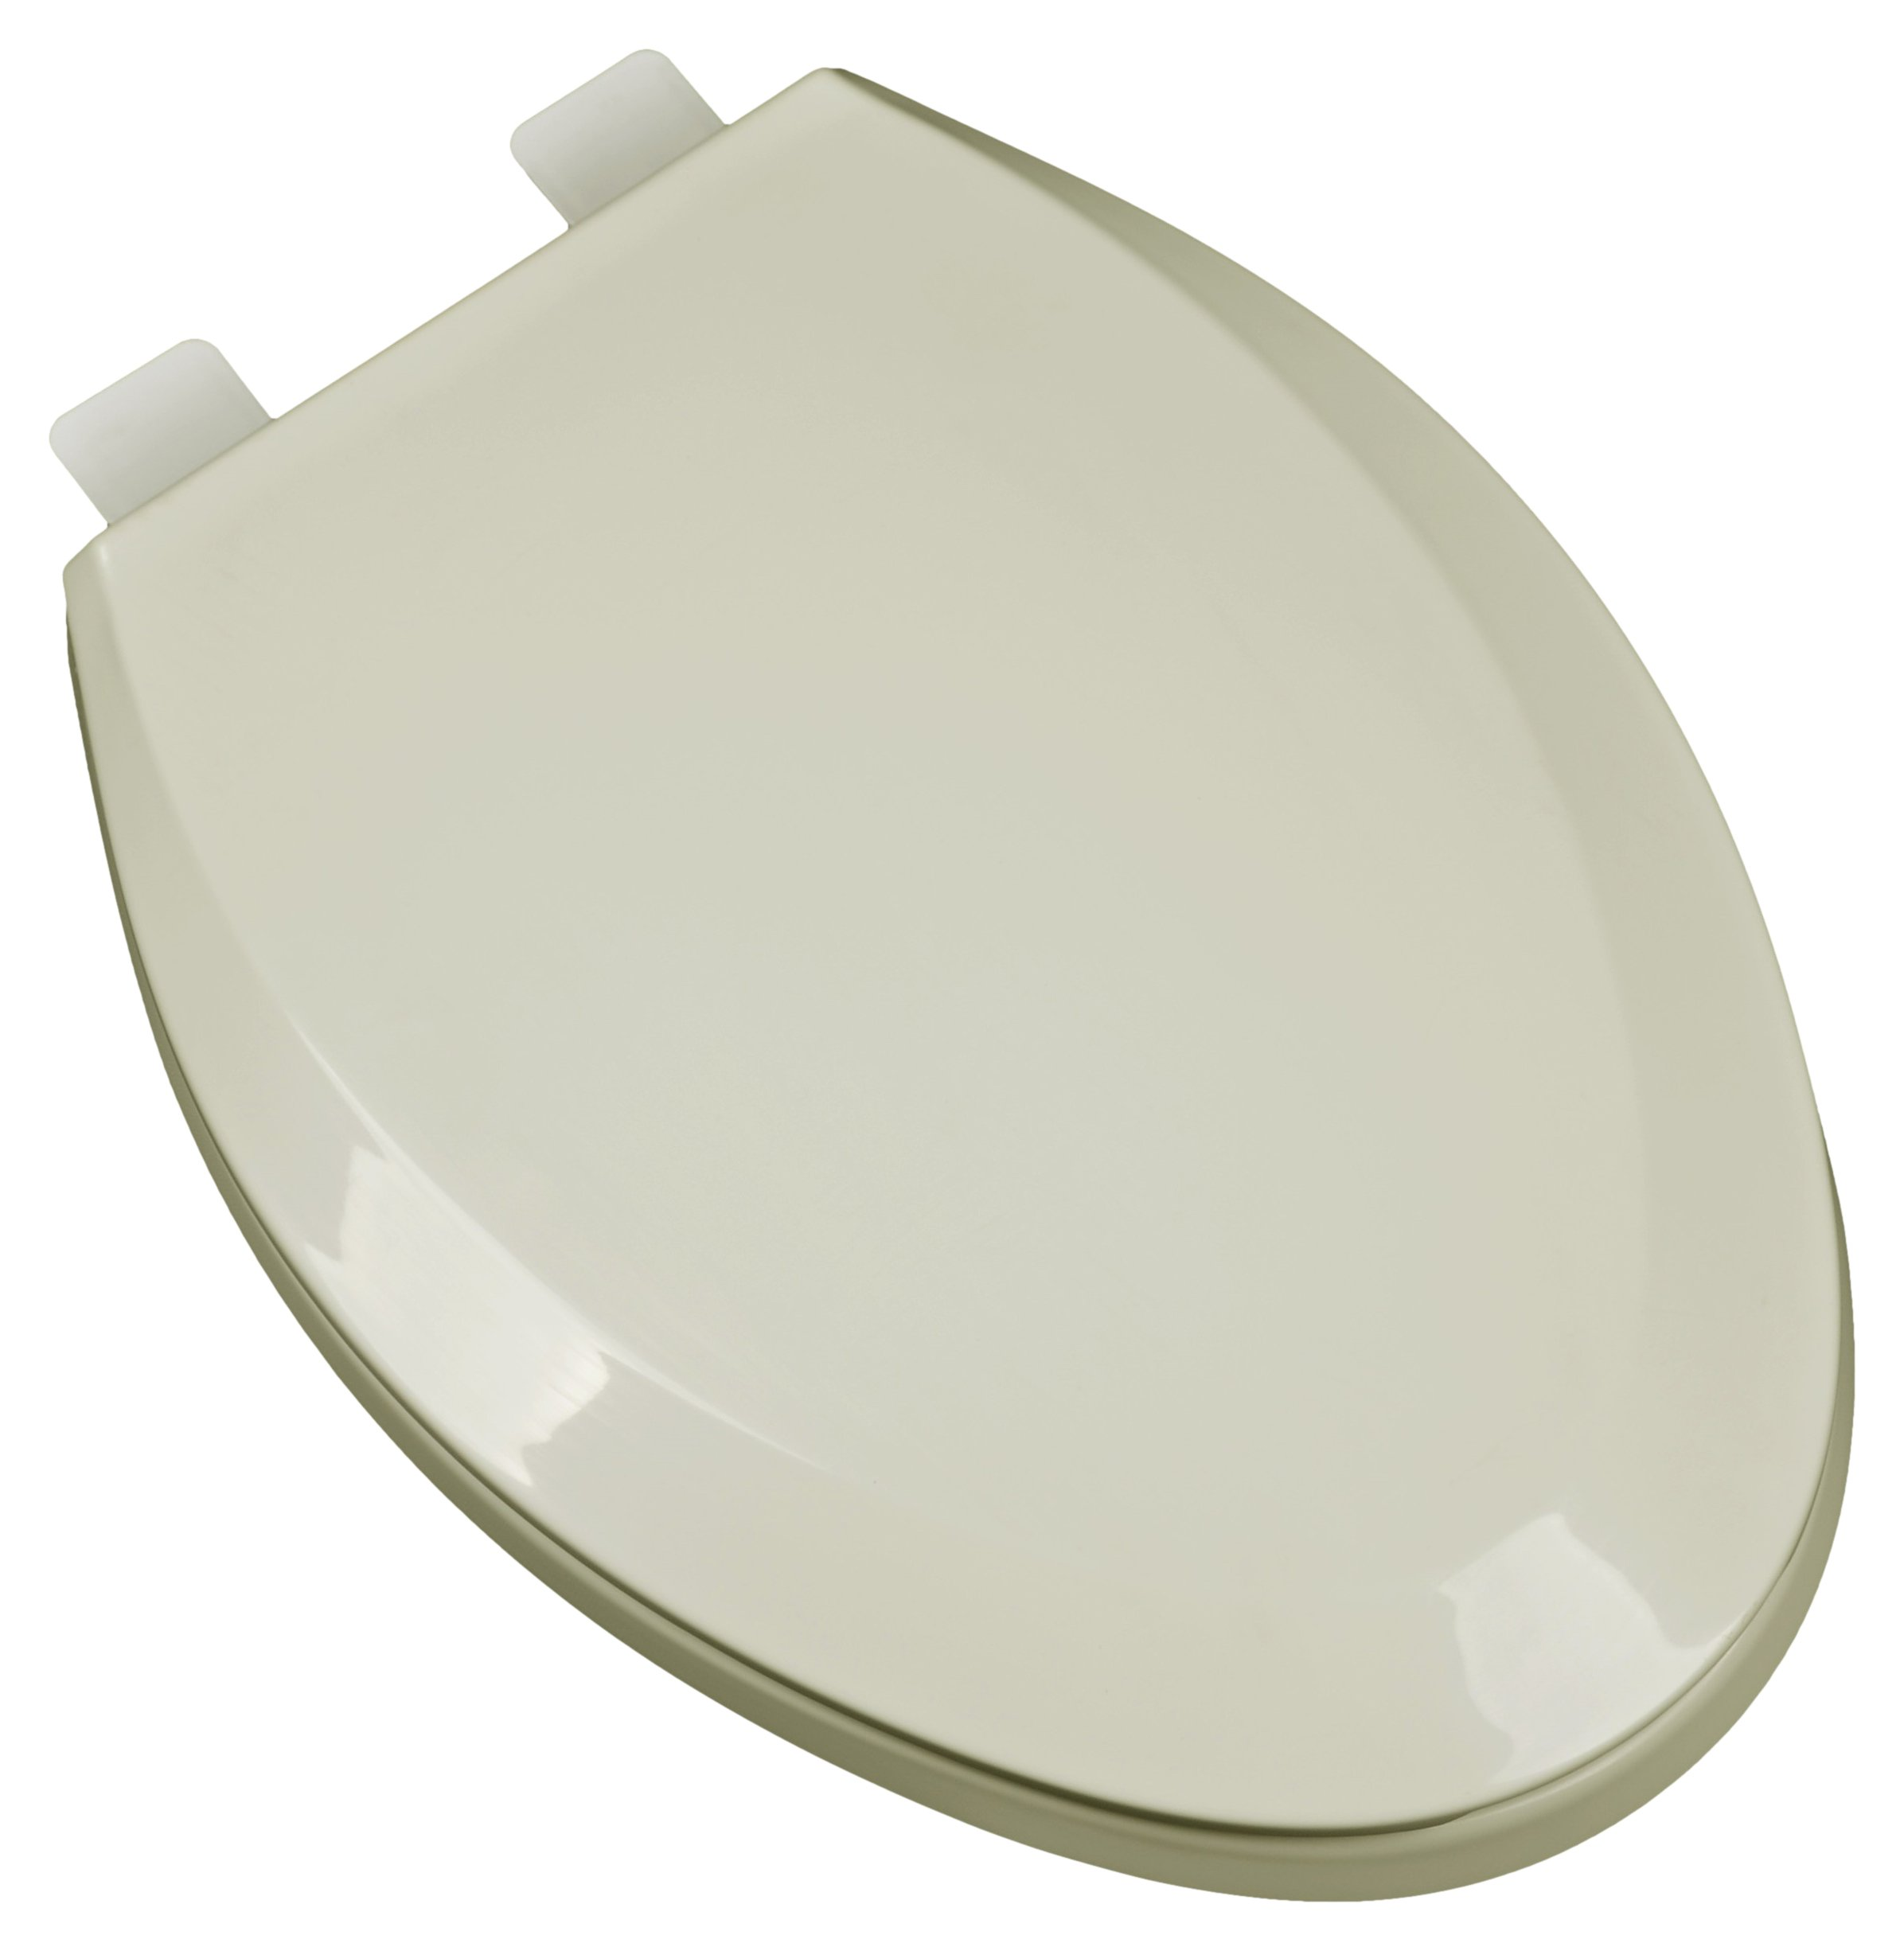 Bath Décor 2F1E5-01 Premium Plastic Elongated Toilet Seat with Adjustable Hinge